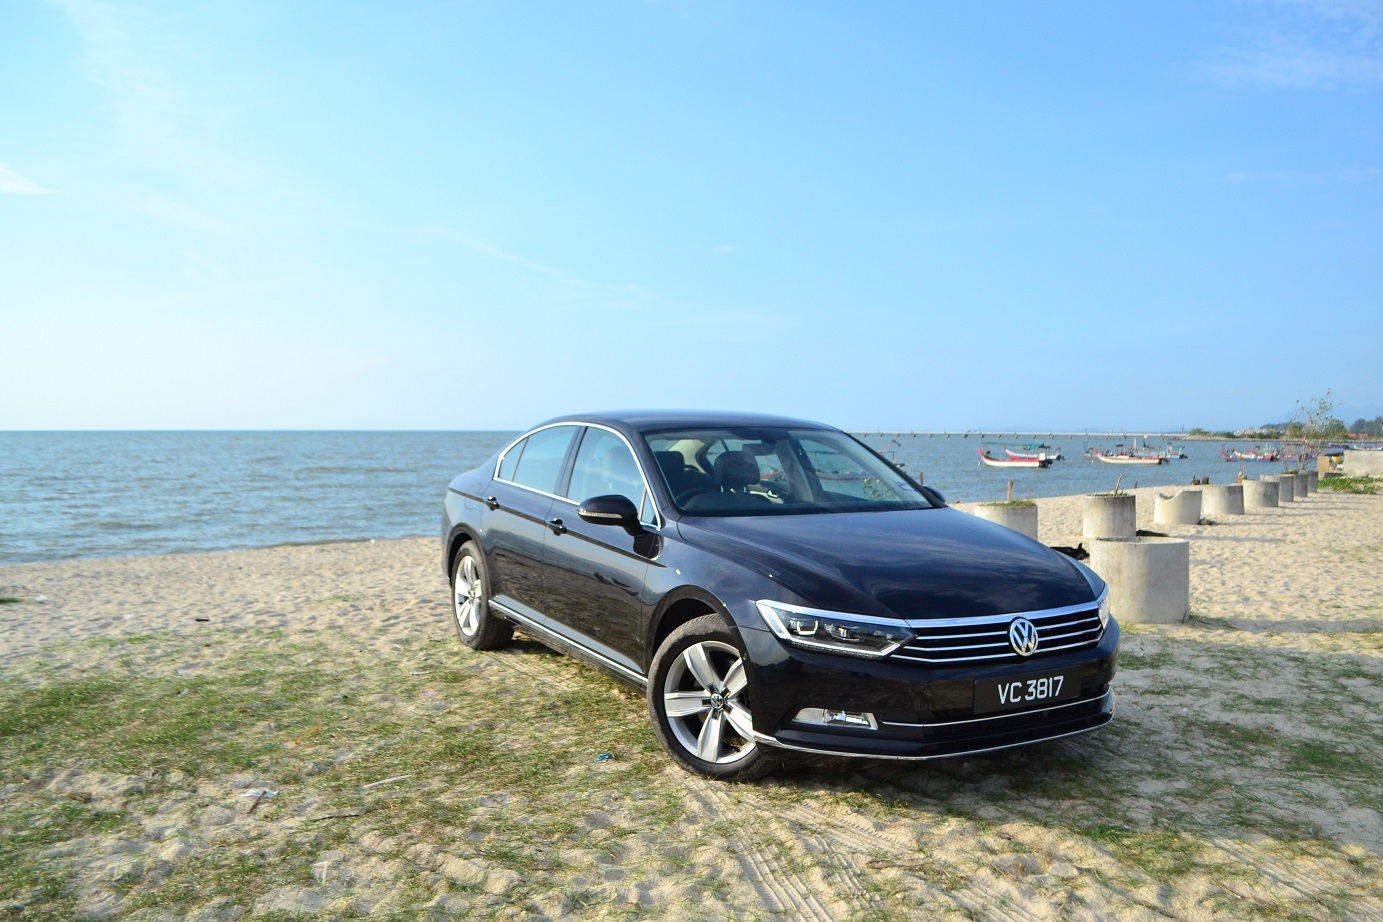 The Volkswagen Passat 1 8 TSI - Dare you? - kensomuse